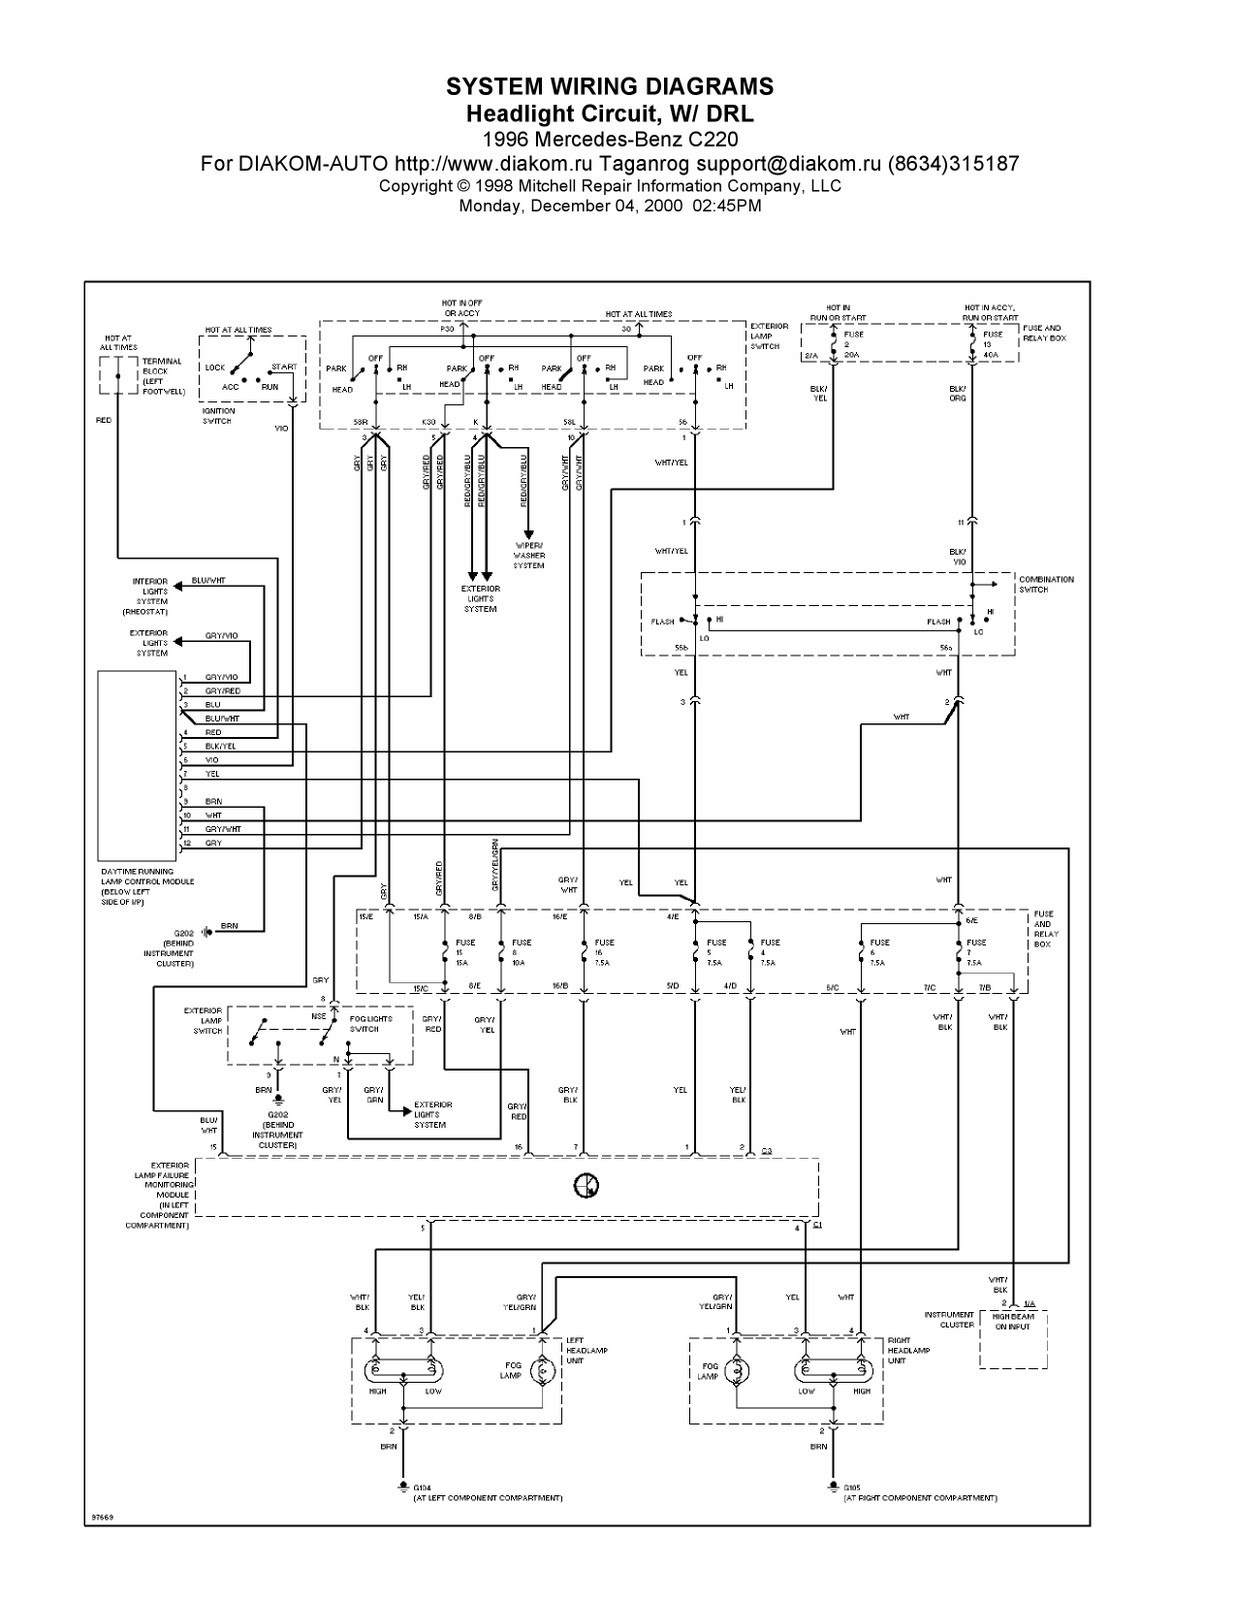 small resolution of w124 air conditioner wiring diagram wiring diagrammercedes benz w209 wiring diagram free image wiring diagram enginemercedes